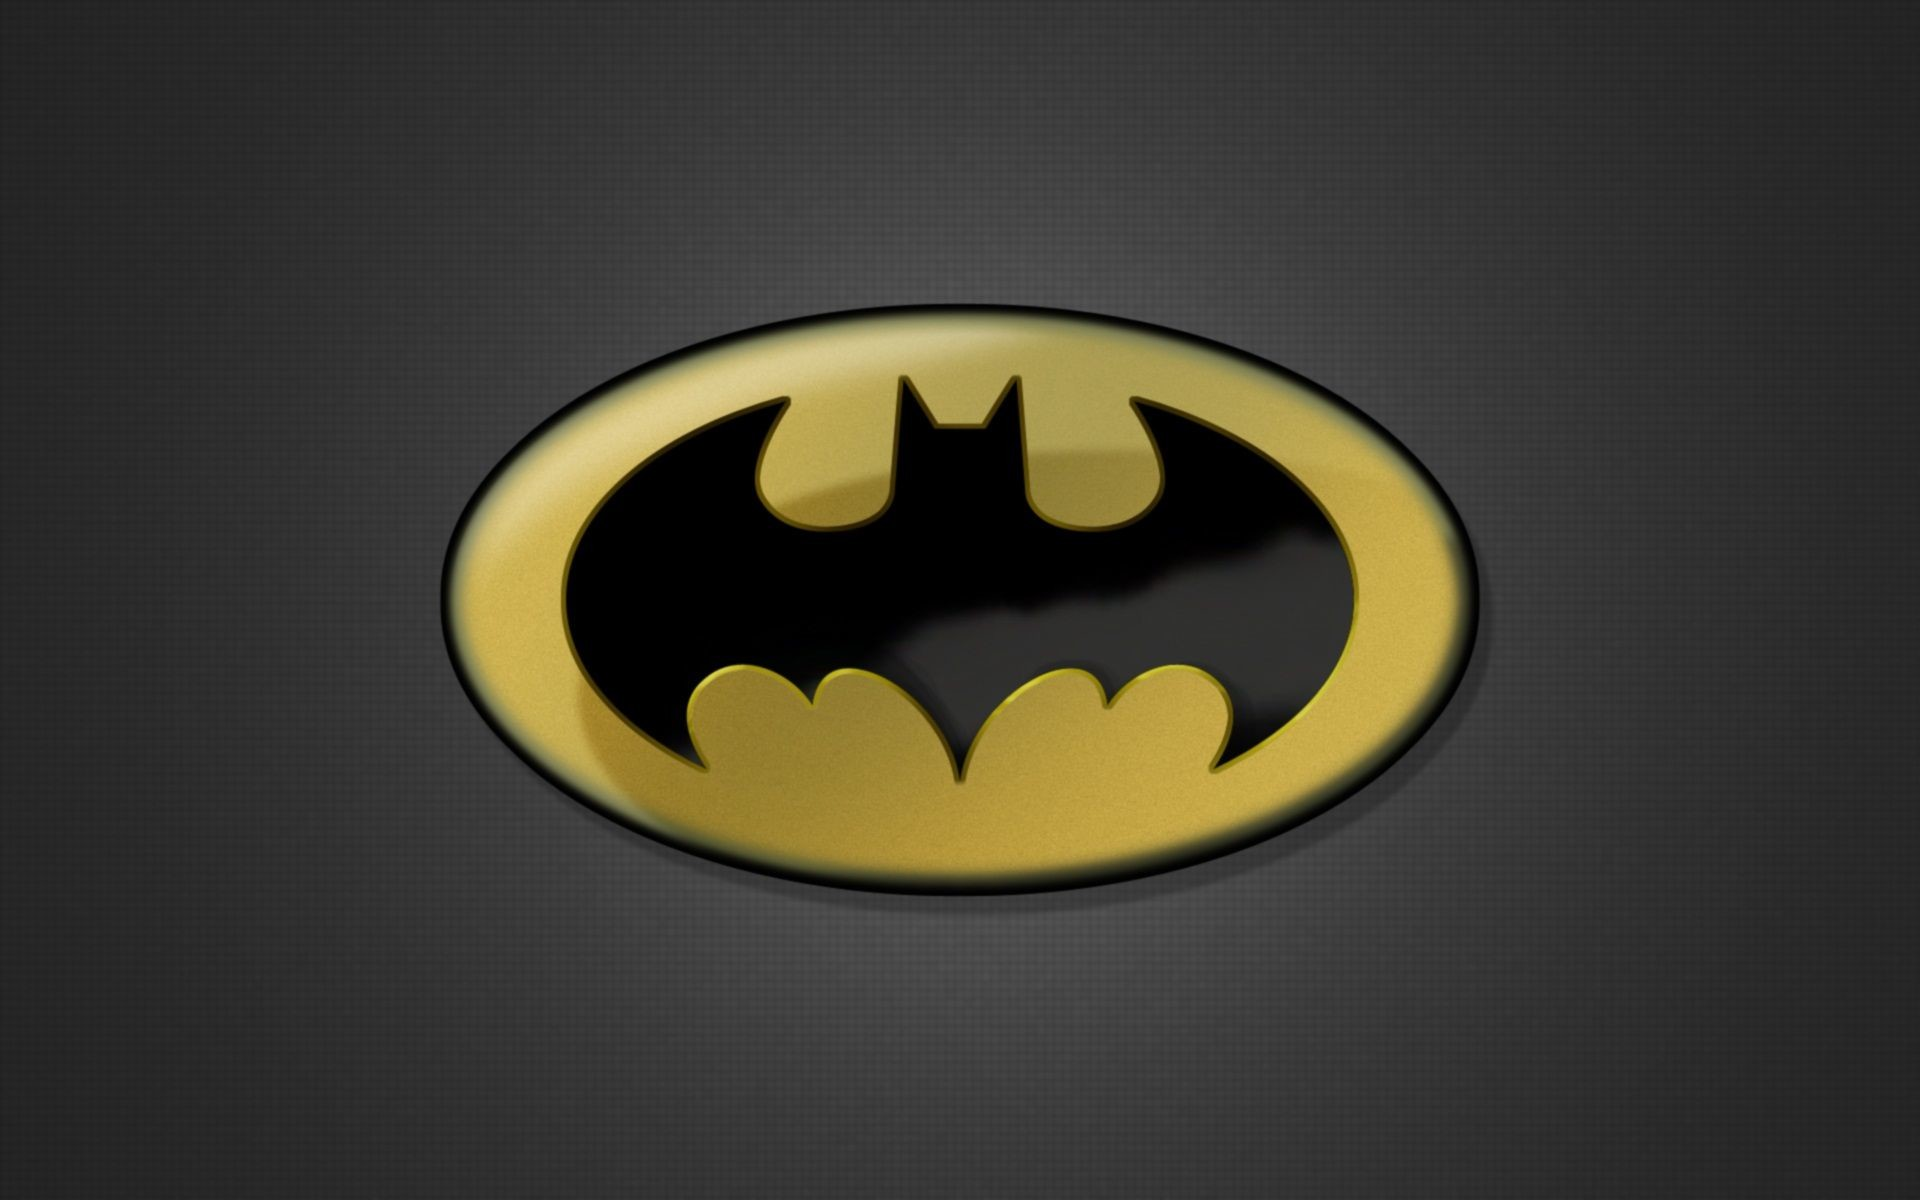 1920x1200 batman logo wallpaper wide with high resolution desktop wallpaper on movies  category similar with arkham knight beyond comic iphone joker logo superman  the ...